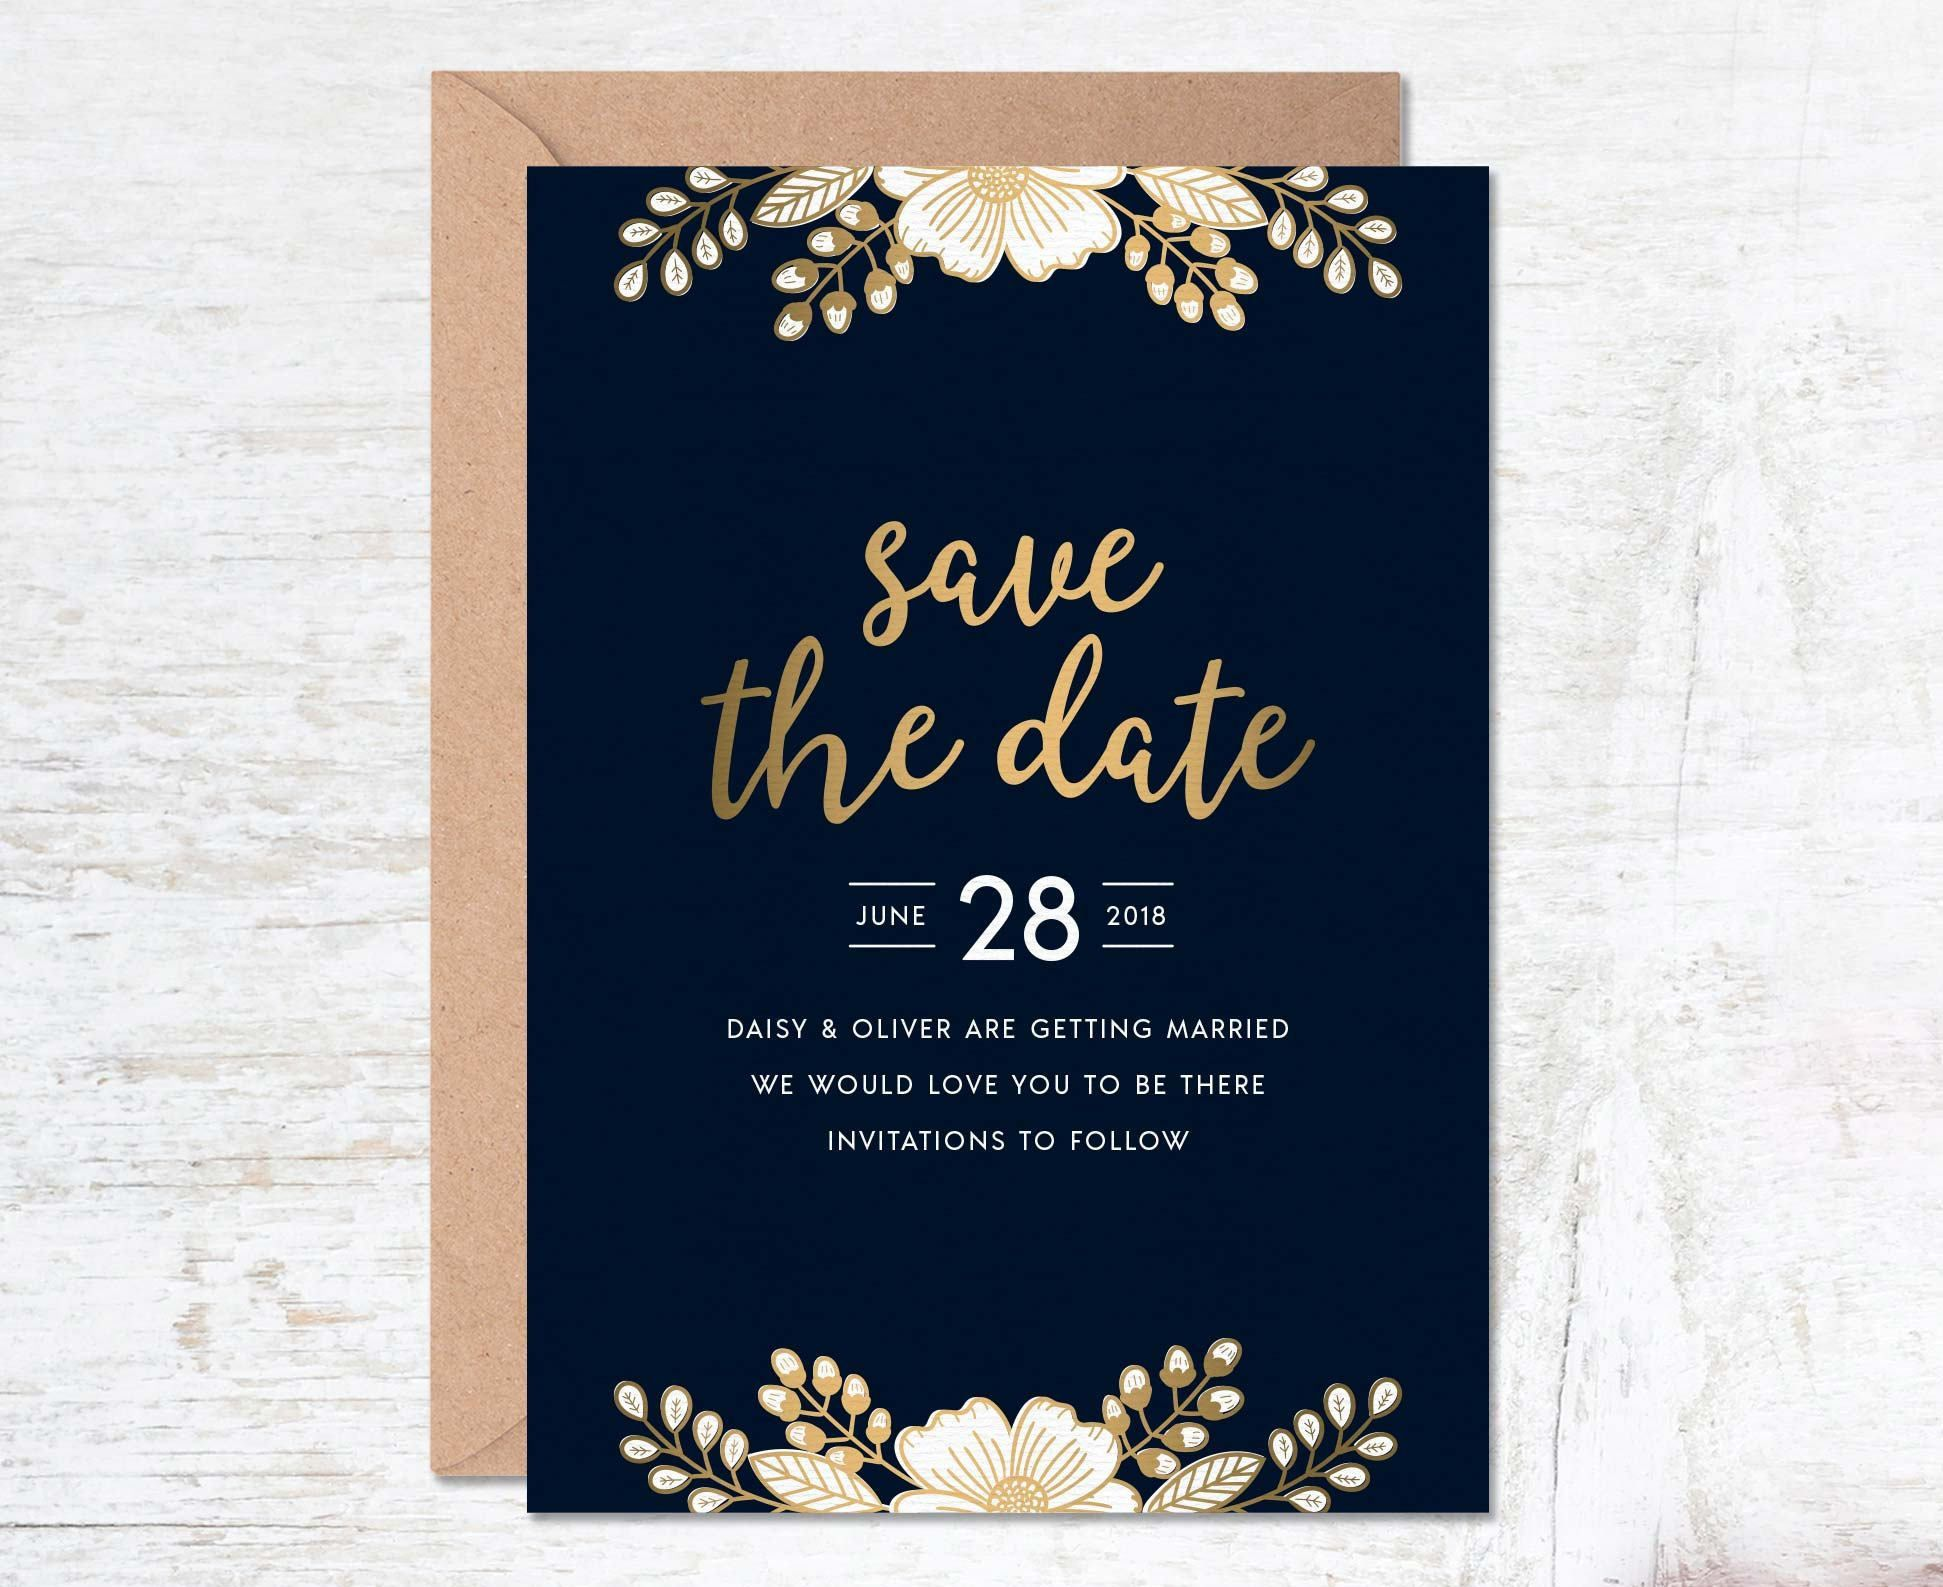 000 Unusual Free Save The Date Birthday Postcard Template Photo  TemplatesFull